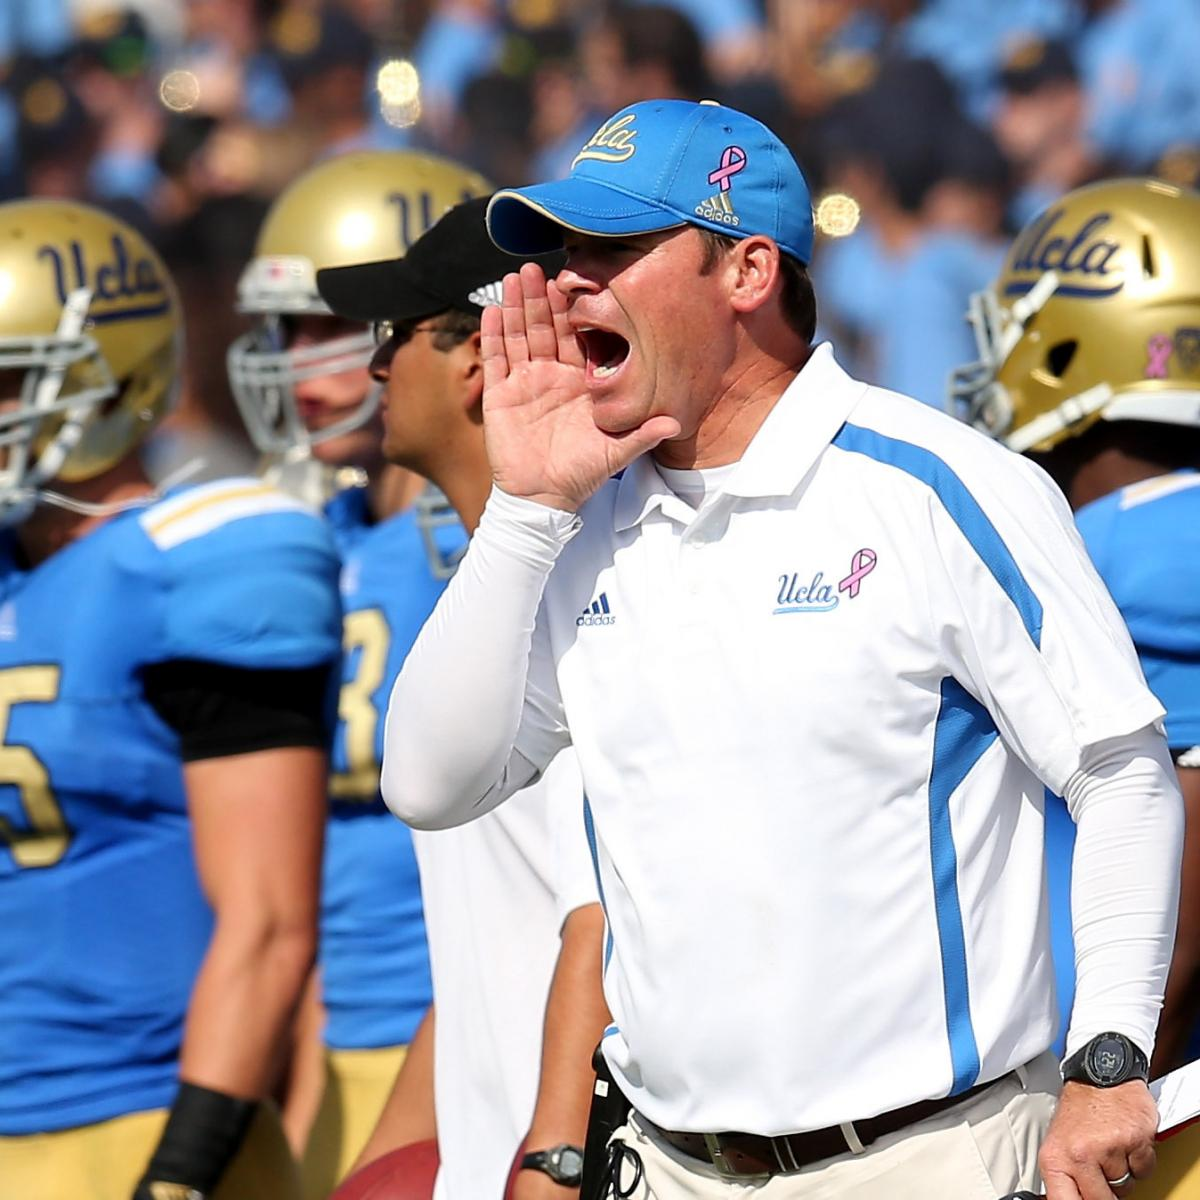 UCLA Bruins Football 2013 Team Program | Bleacher Report ...Bruins Bleacher Report